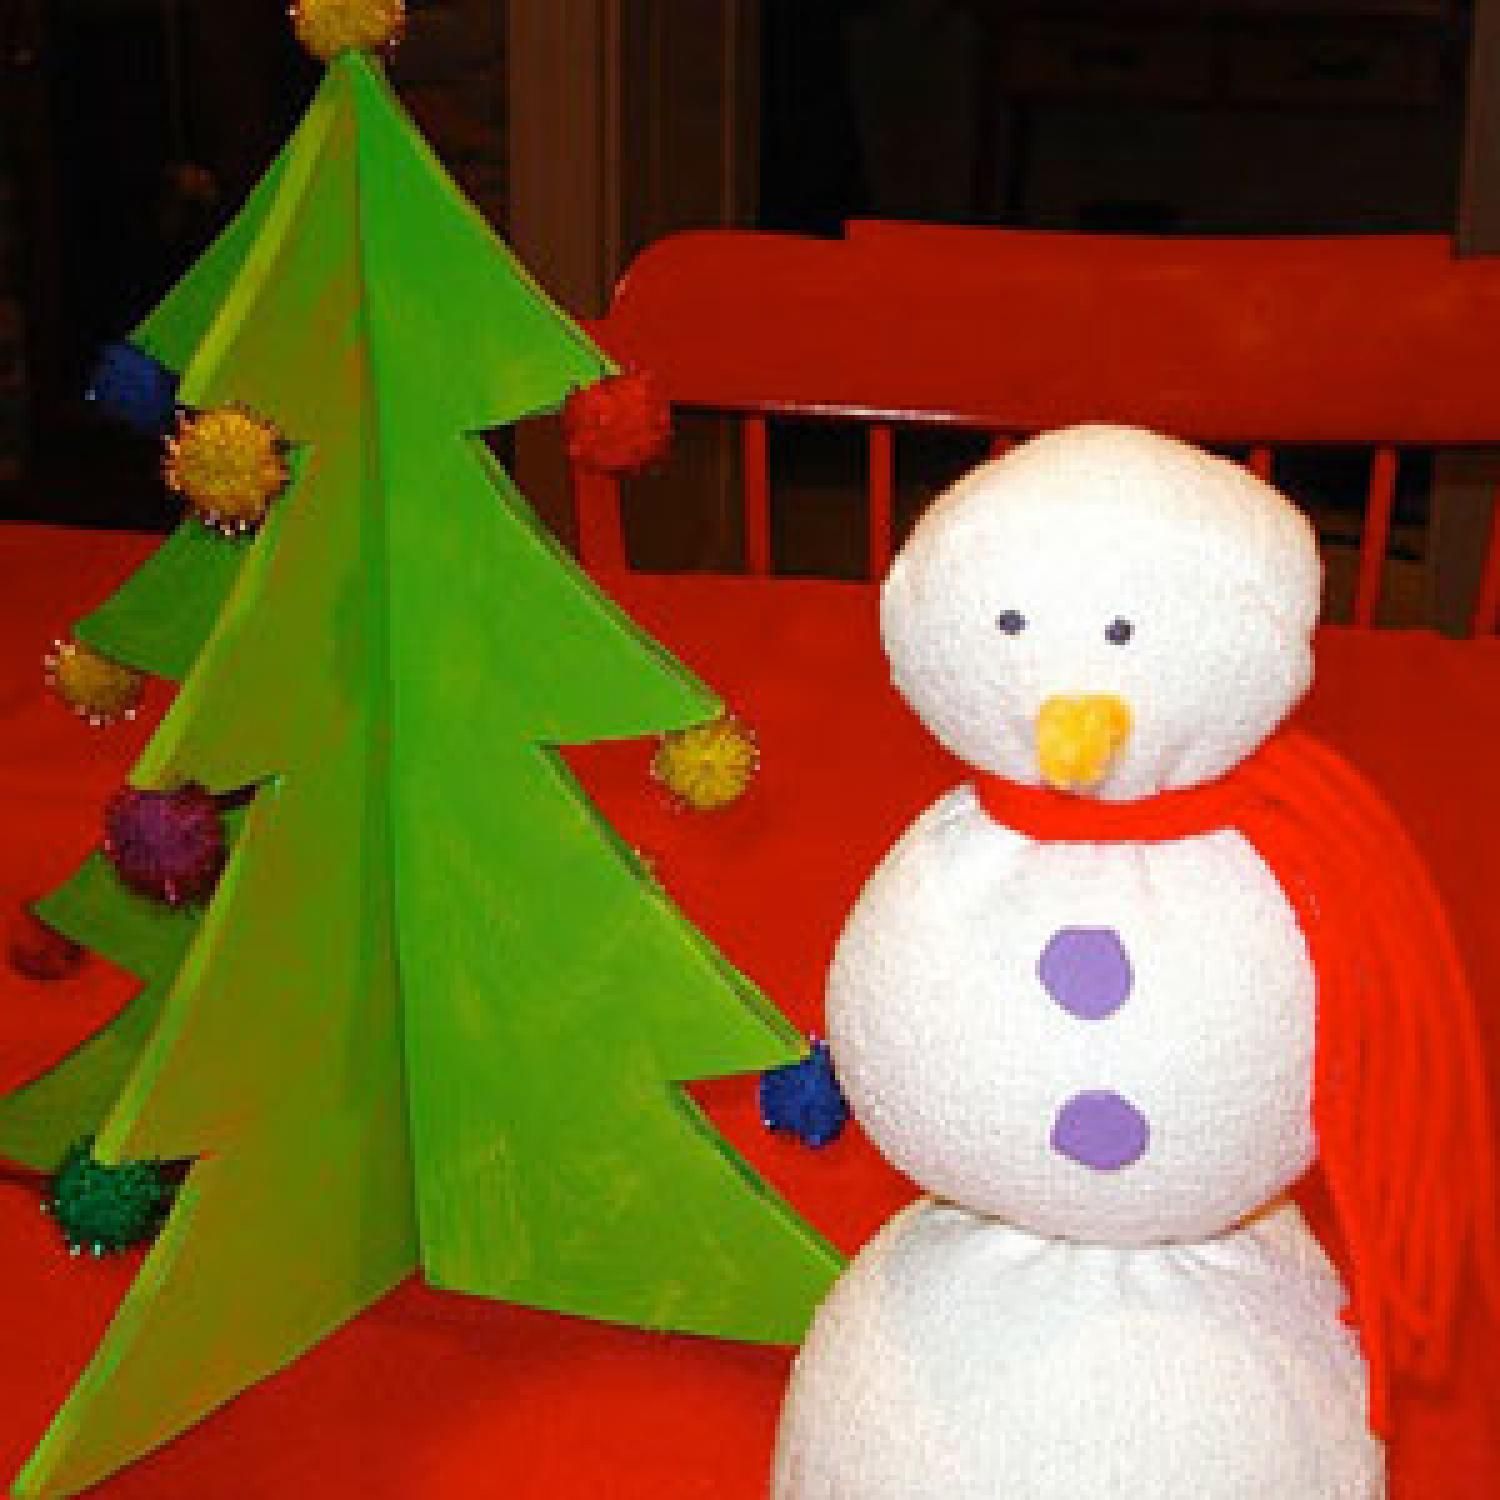 This Christmas craft for kids doubles as a great Christmas decoration the whole family will admire - parenting.com